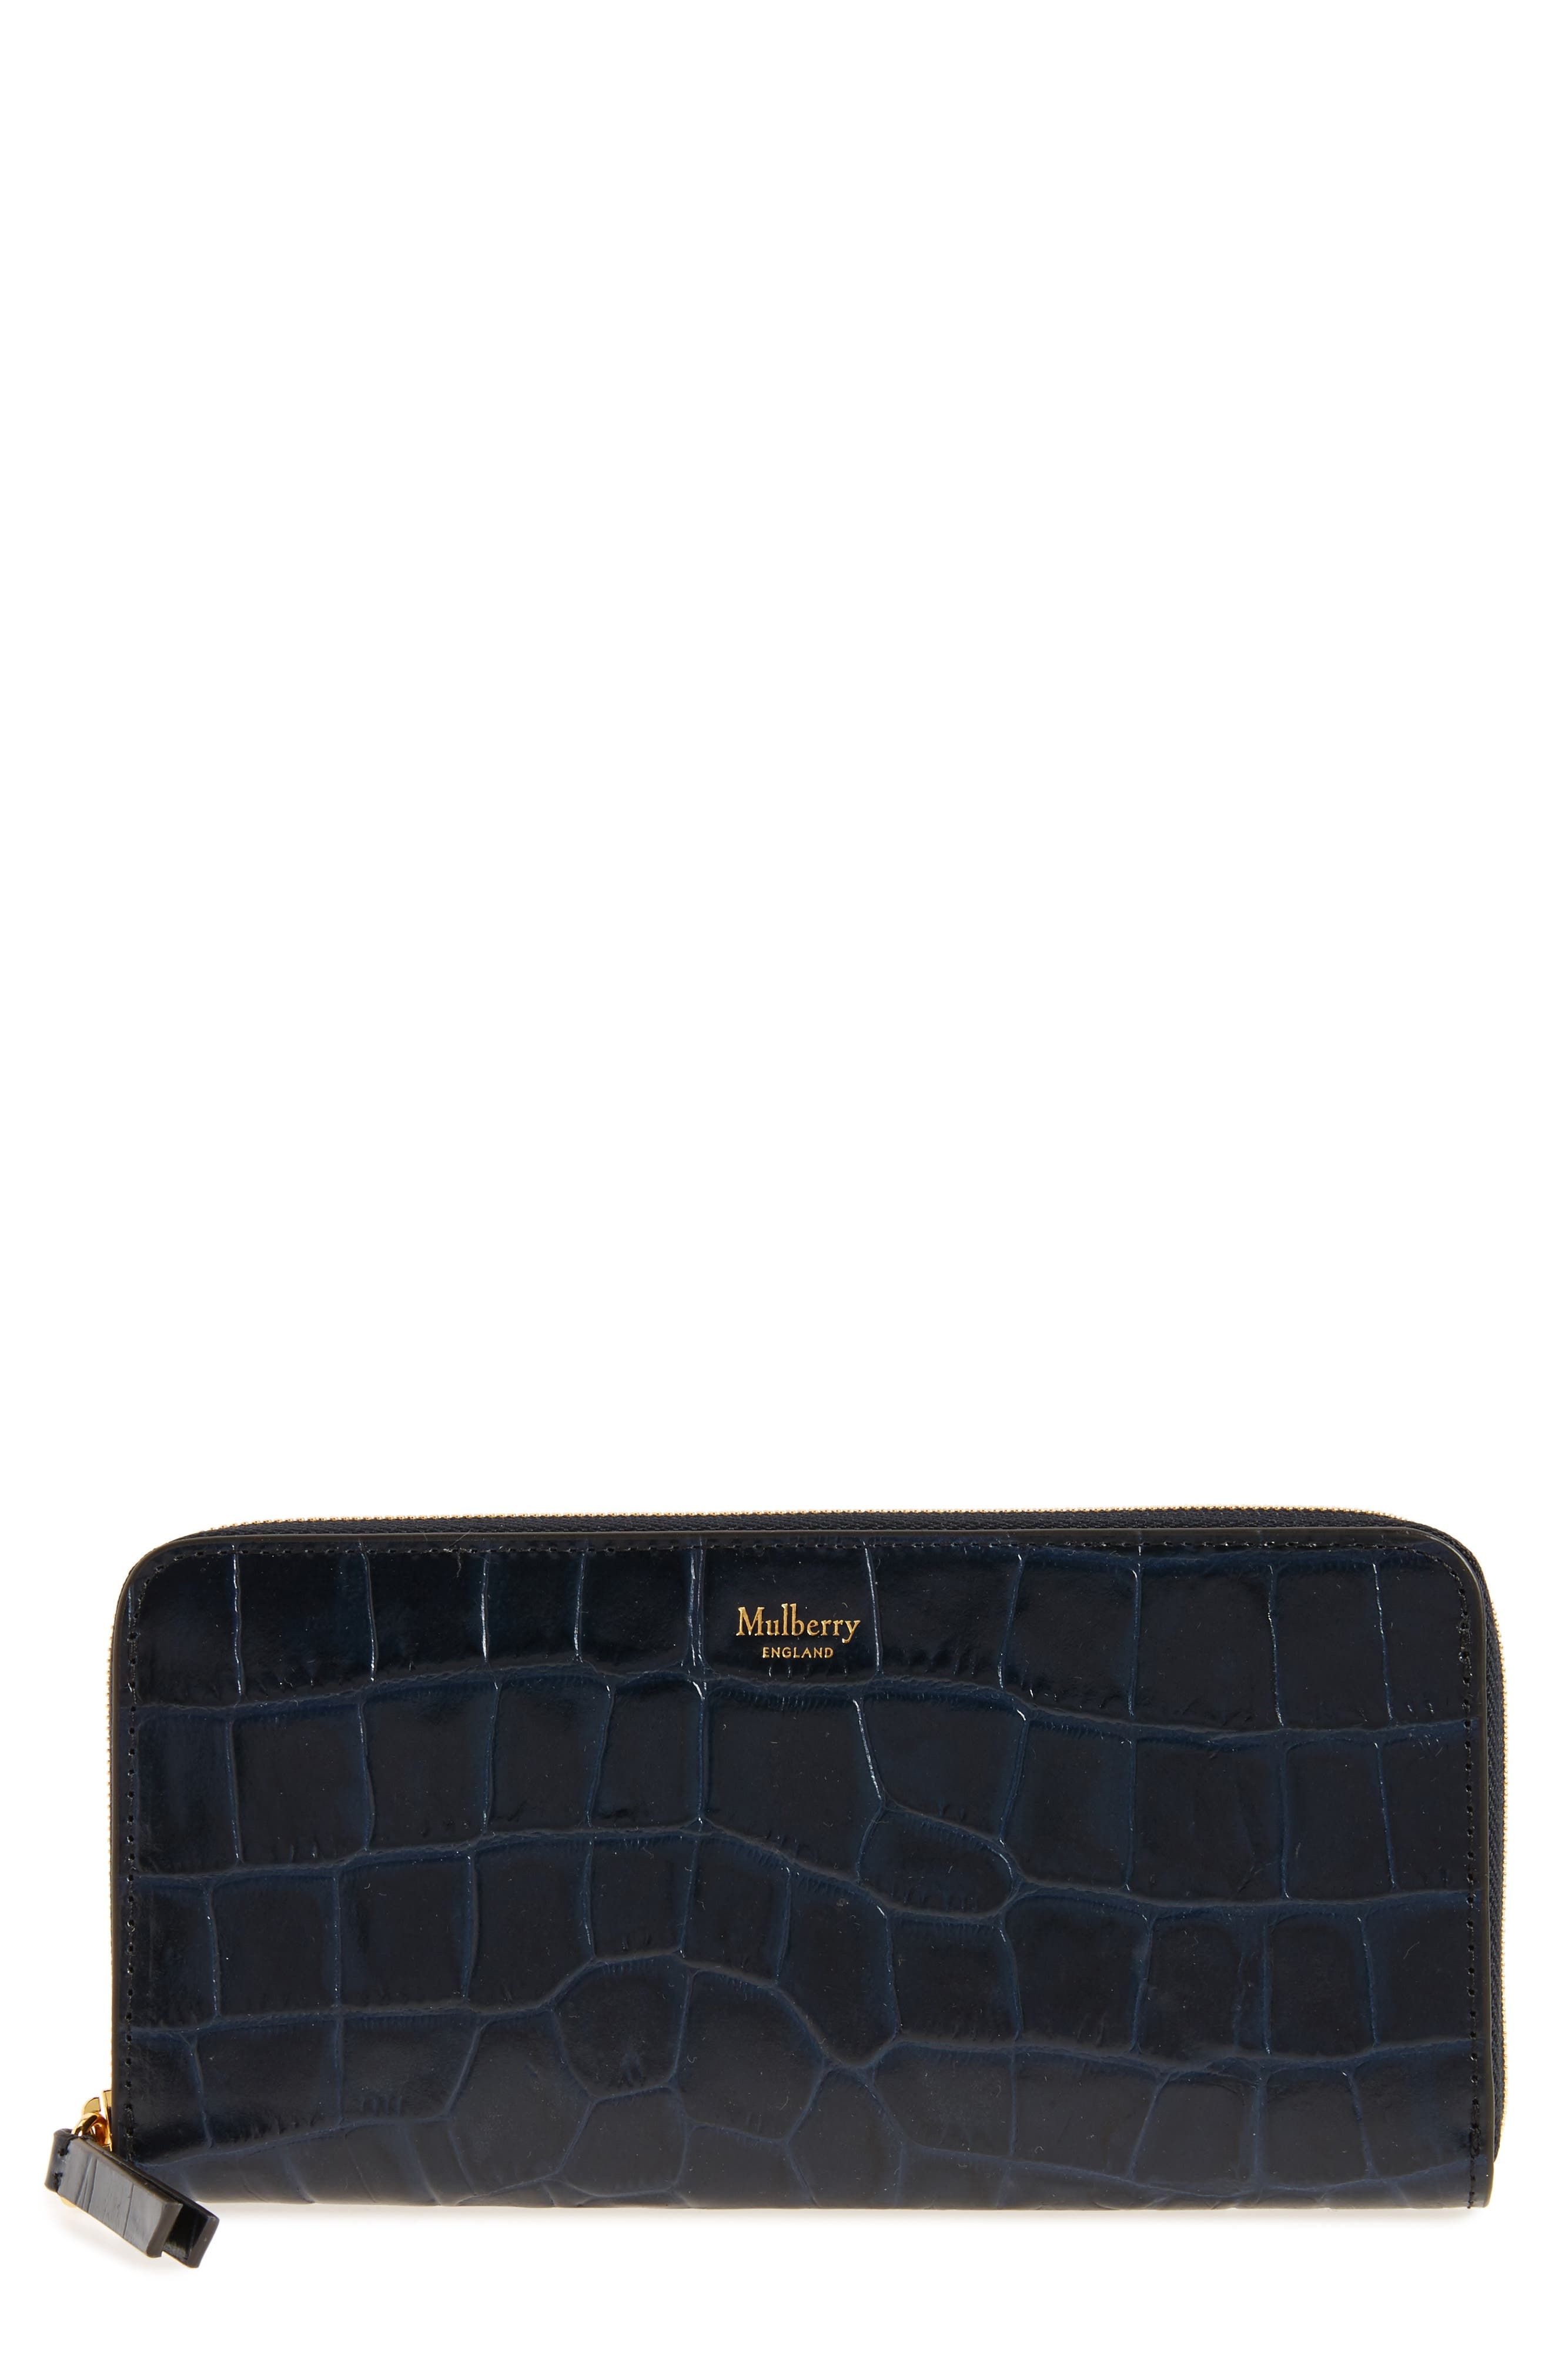 Mulberry Zip Around Leather Wallet